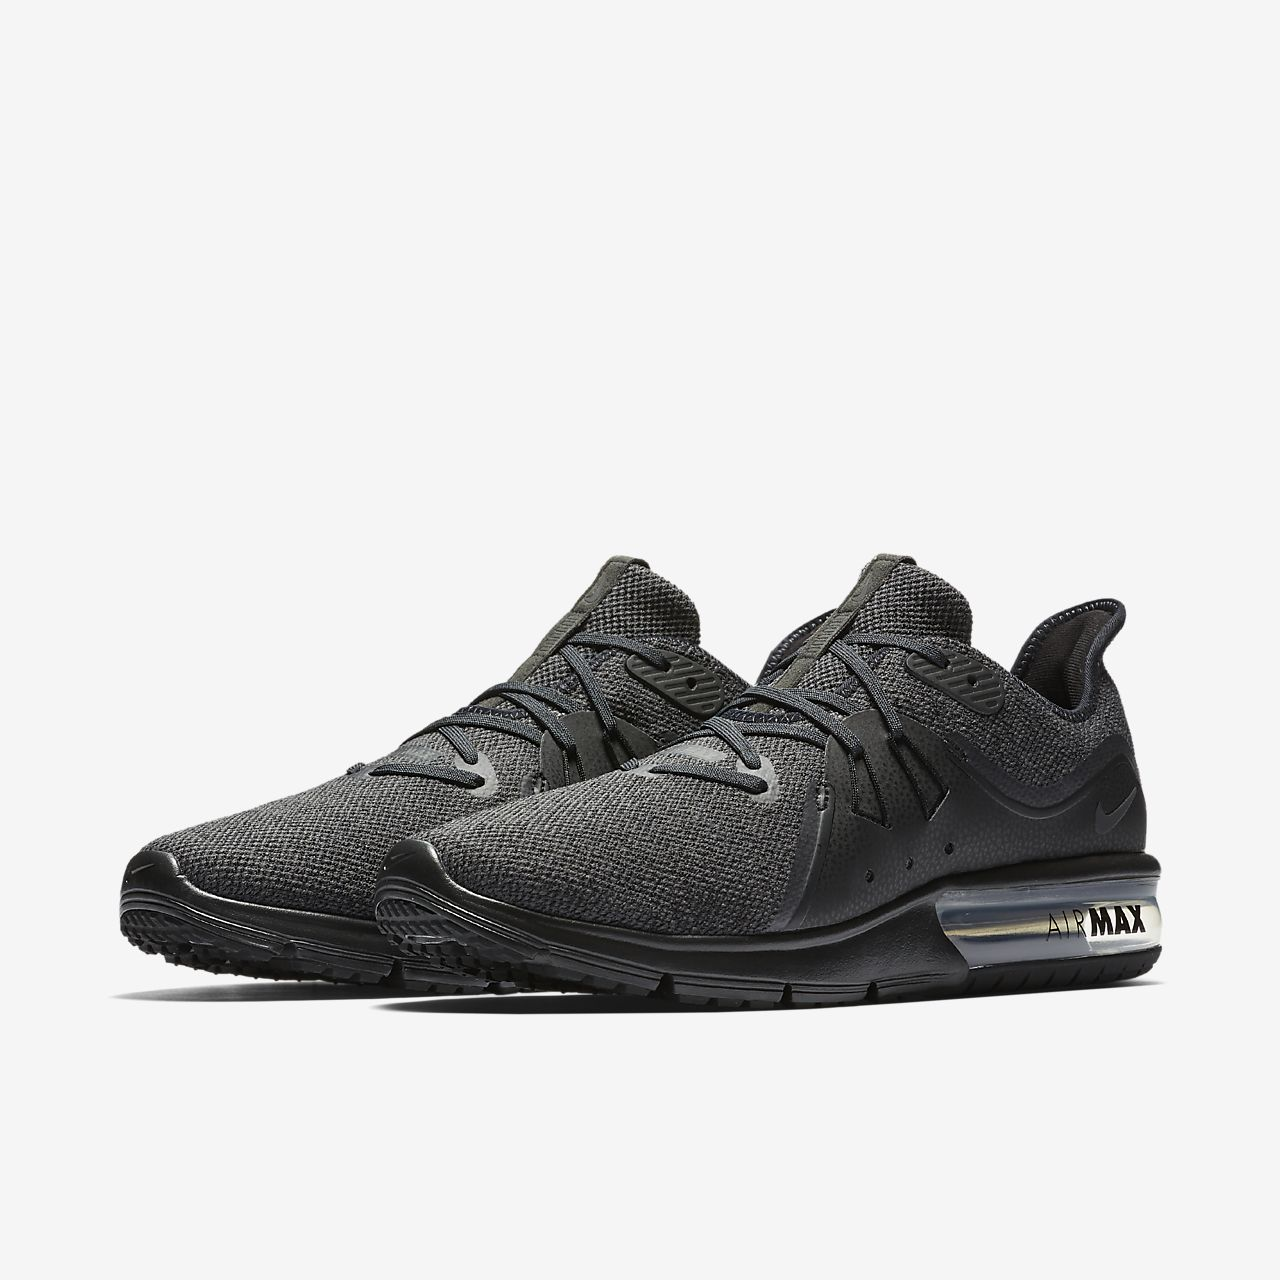 Marques Chaussure homme Nike homme Nike Air Max Sequent 3 Black/anthracite